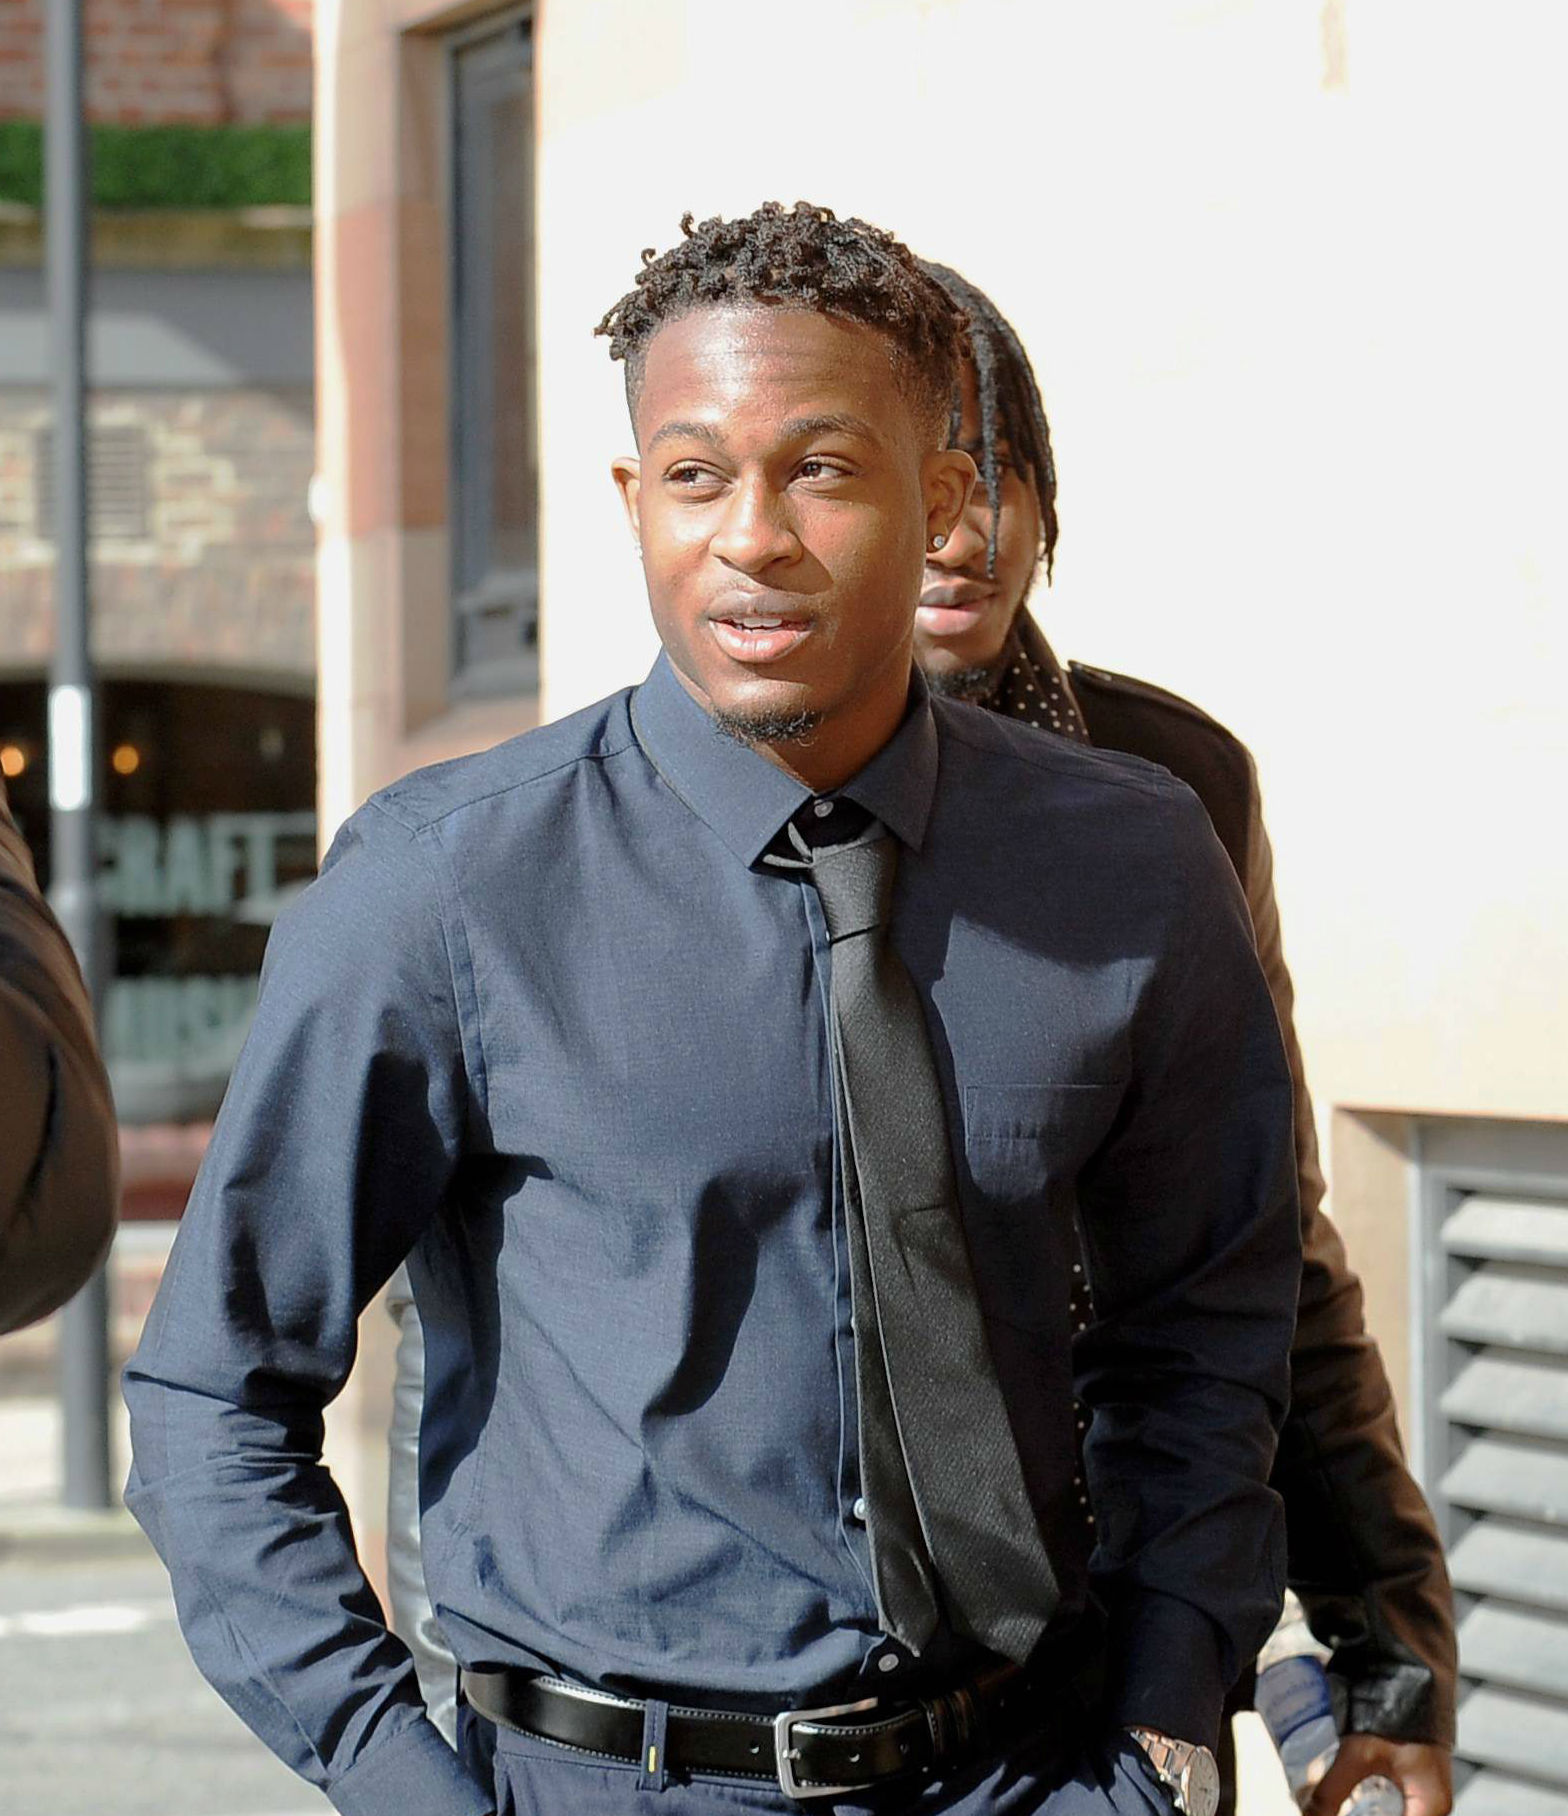 Newcastle United footballer Rolando Aarons. Picture: North News